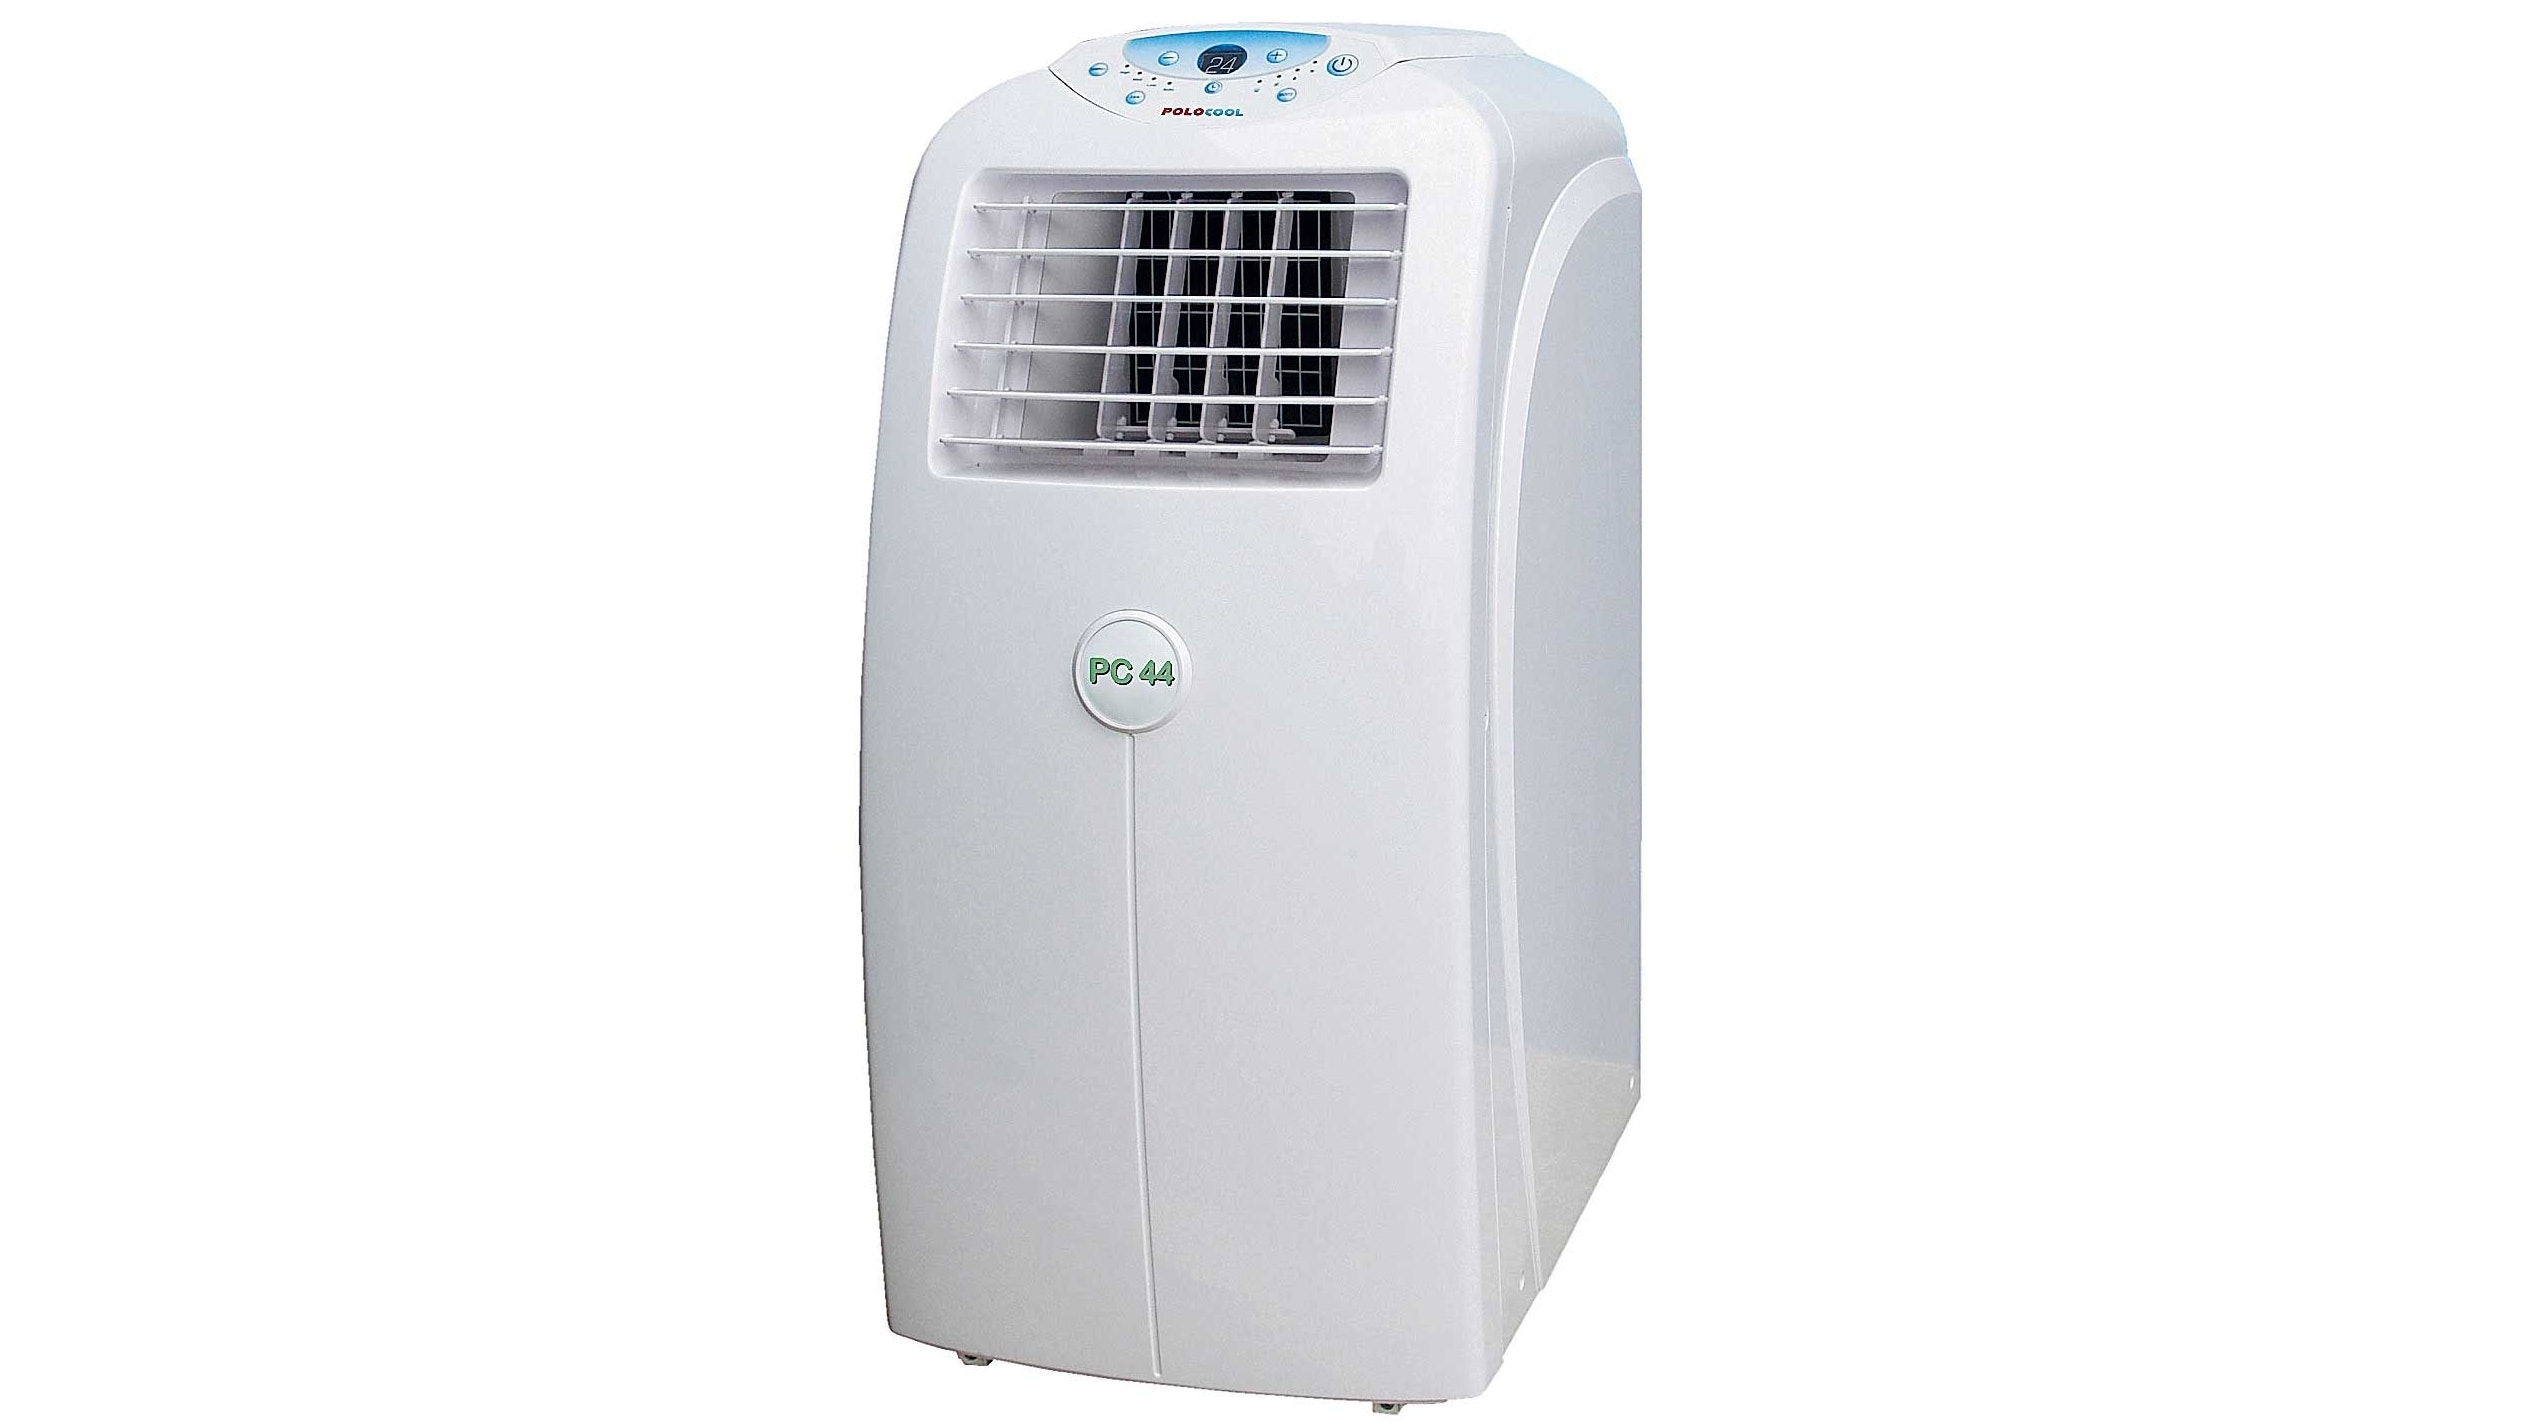 #1E81AD Polocool Portable Air Conditioner Domayne Highly Rated 9259 Air Conditioning Perth Harvey Norman wallpapers with 2535x1426 px on helpvideos.info - Air Conditioners, Air Coolers and more